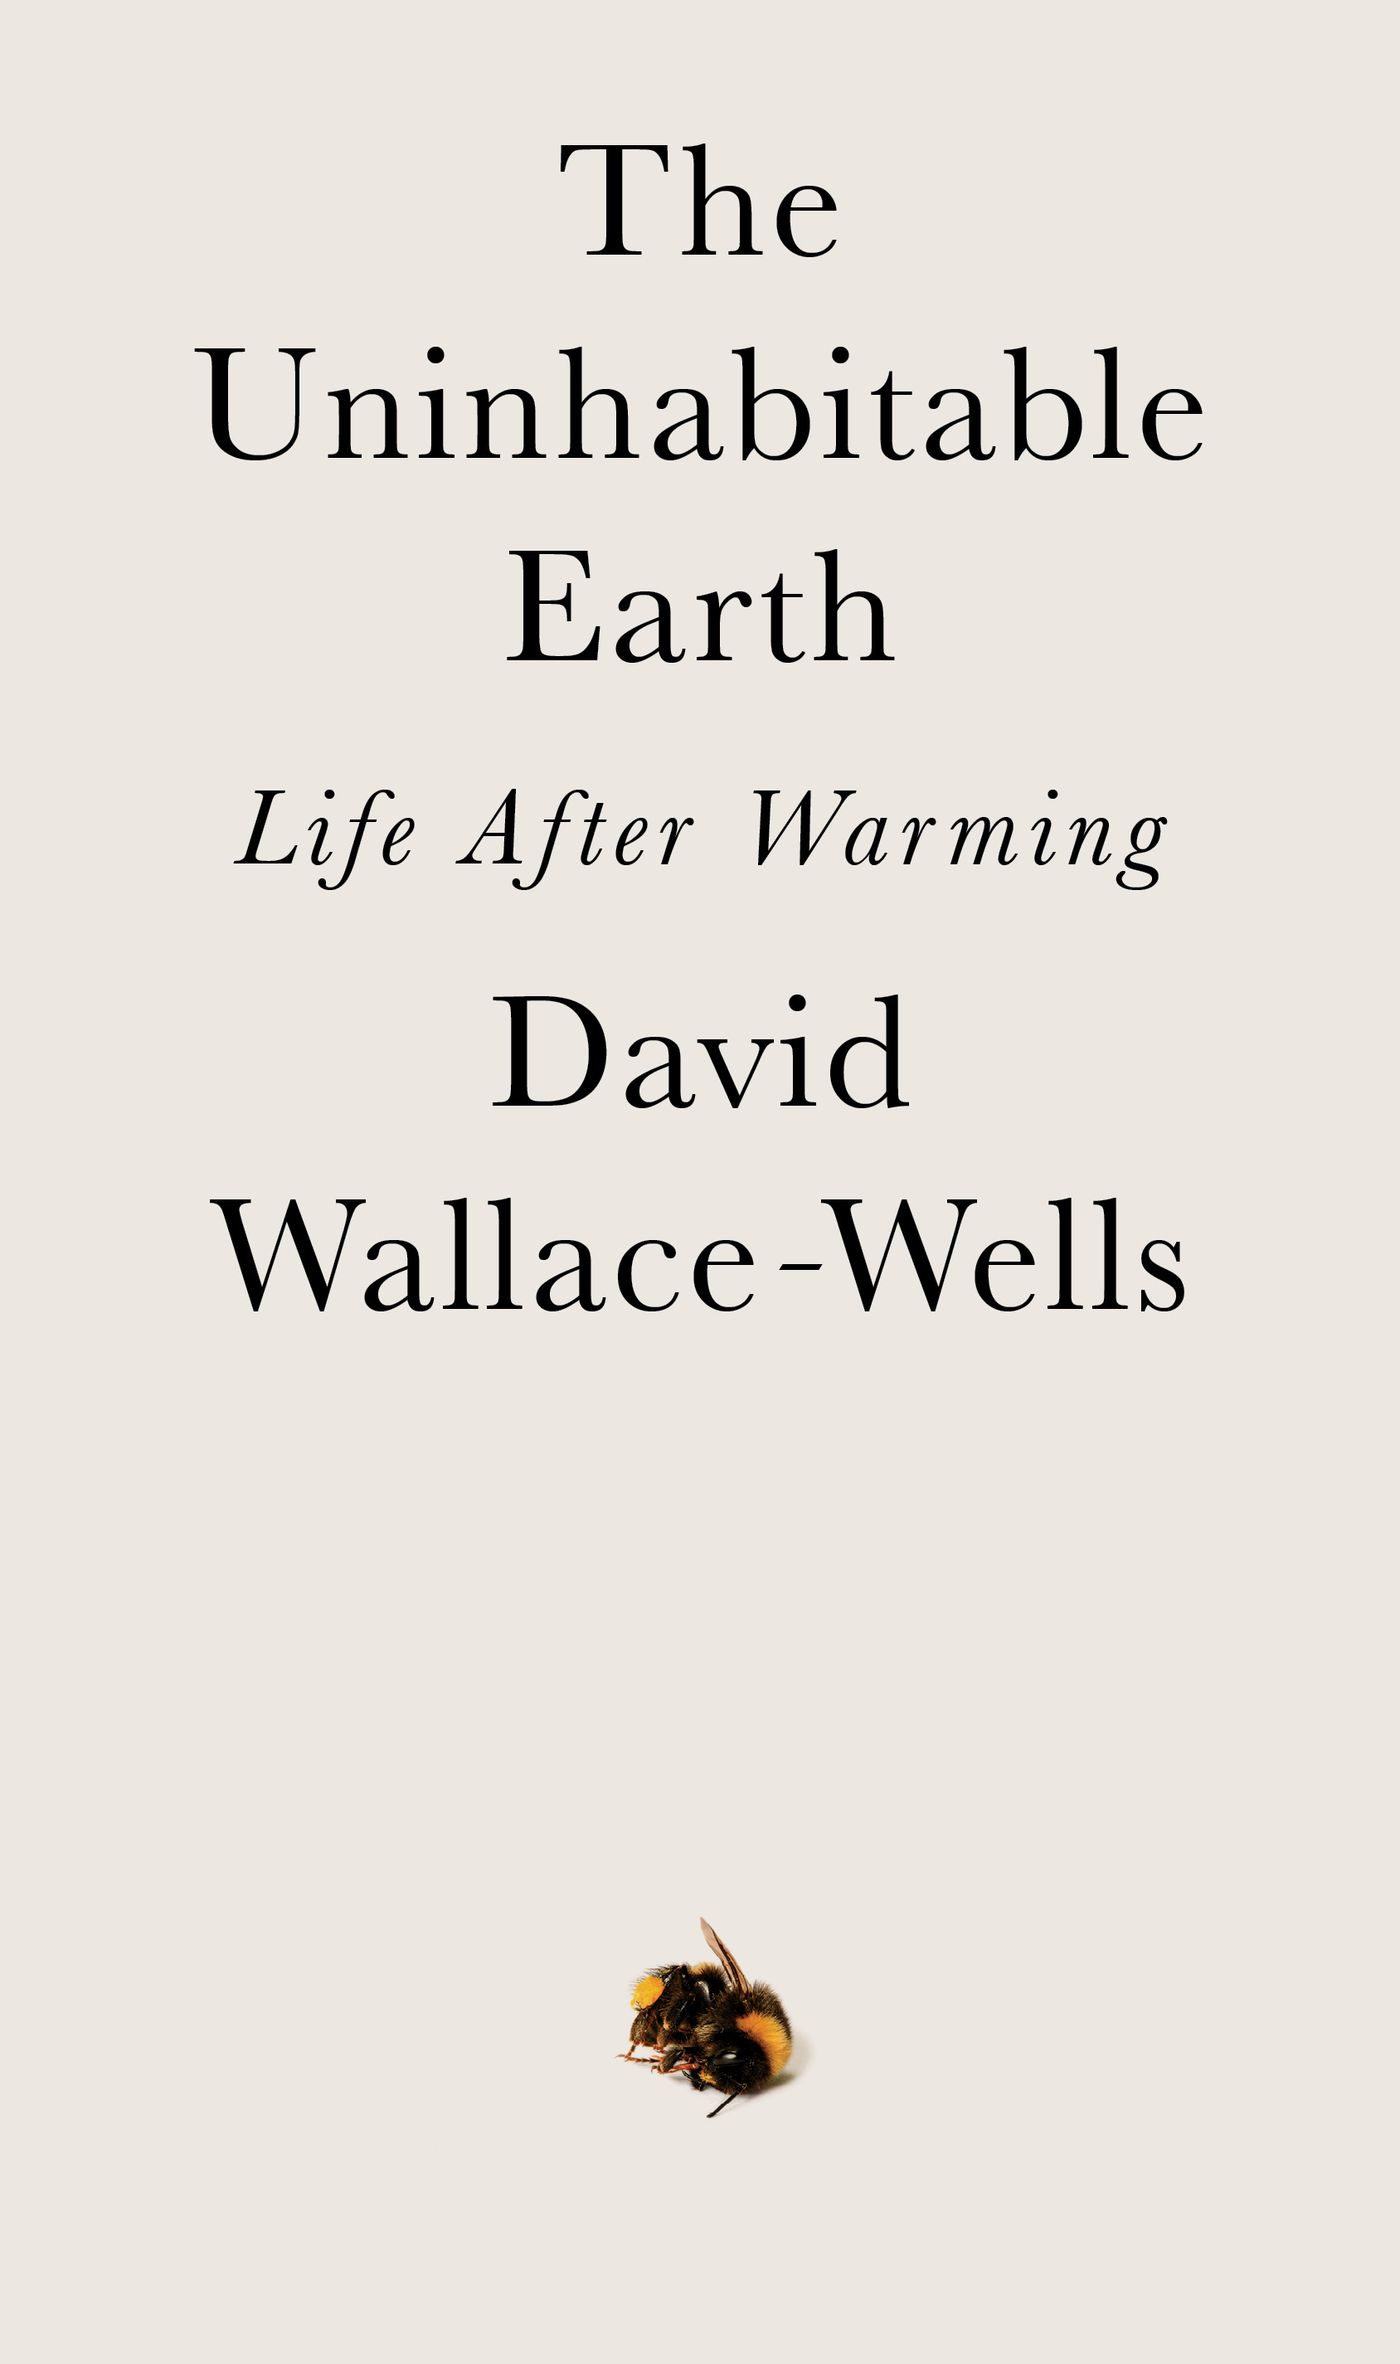 The Uninhabitable Earth: David Wallace-Wells on the horrors of